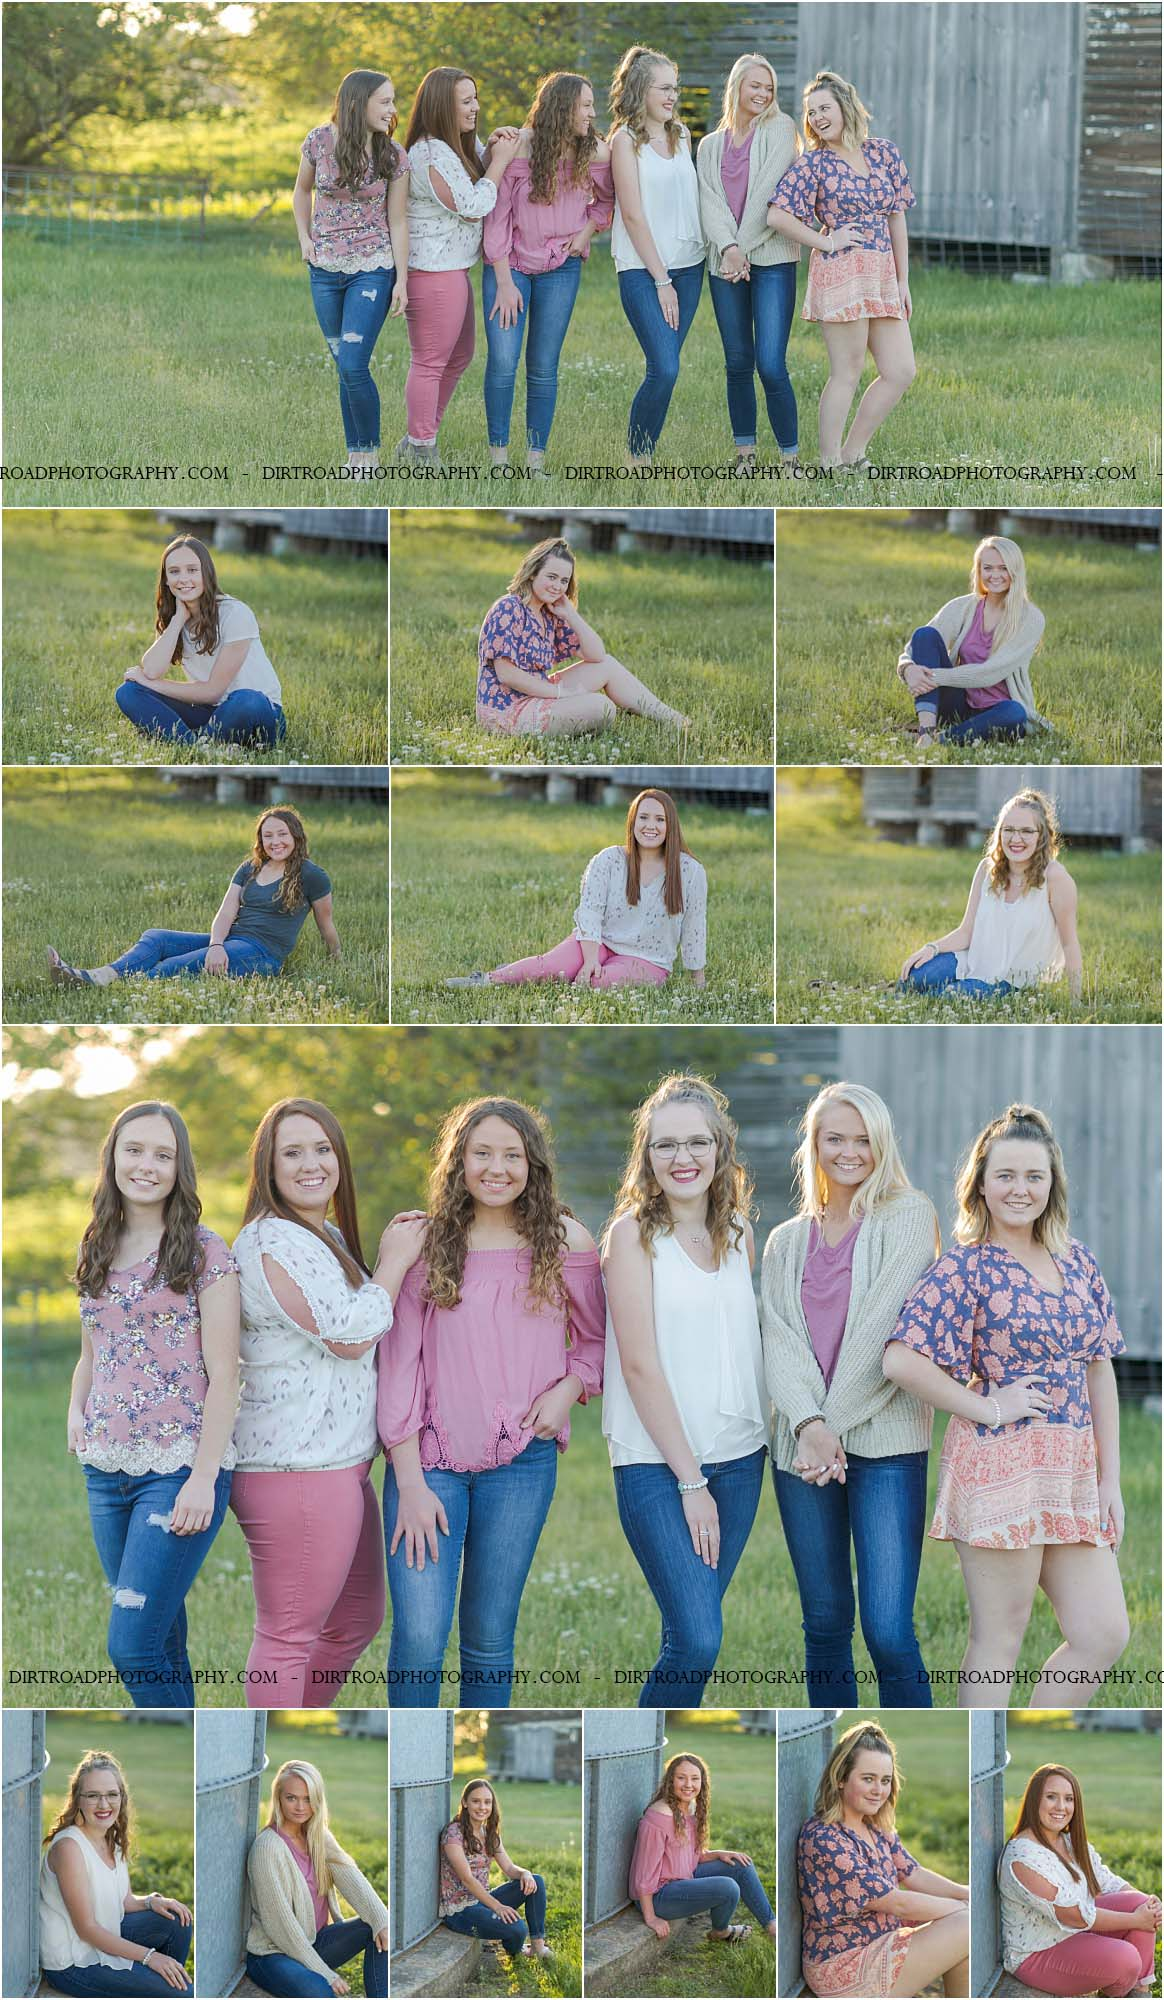 picture of high school senior girls from high schools in nebraska including wilber-clatonia high school, milford high school, friend high school, tri-county high school and norris high school. girls are dressed in rompers, jeans, tanks, and sandals or boots. they're standing in tall green grass with purple wildflowers surrounding them at sunset for high school photography sessions held by dirt road photography located near southeast nebraska wilber and swanton area by kelsey homolka nerud the photographer